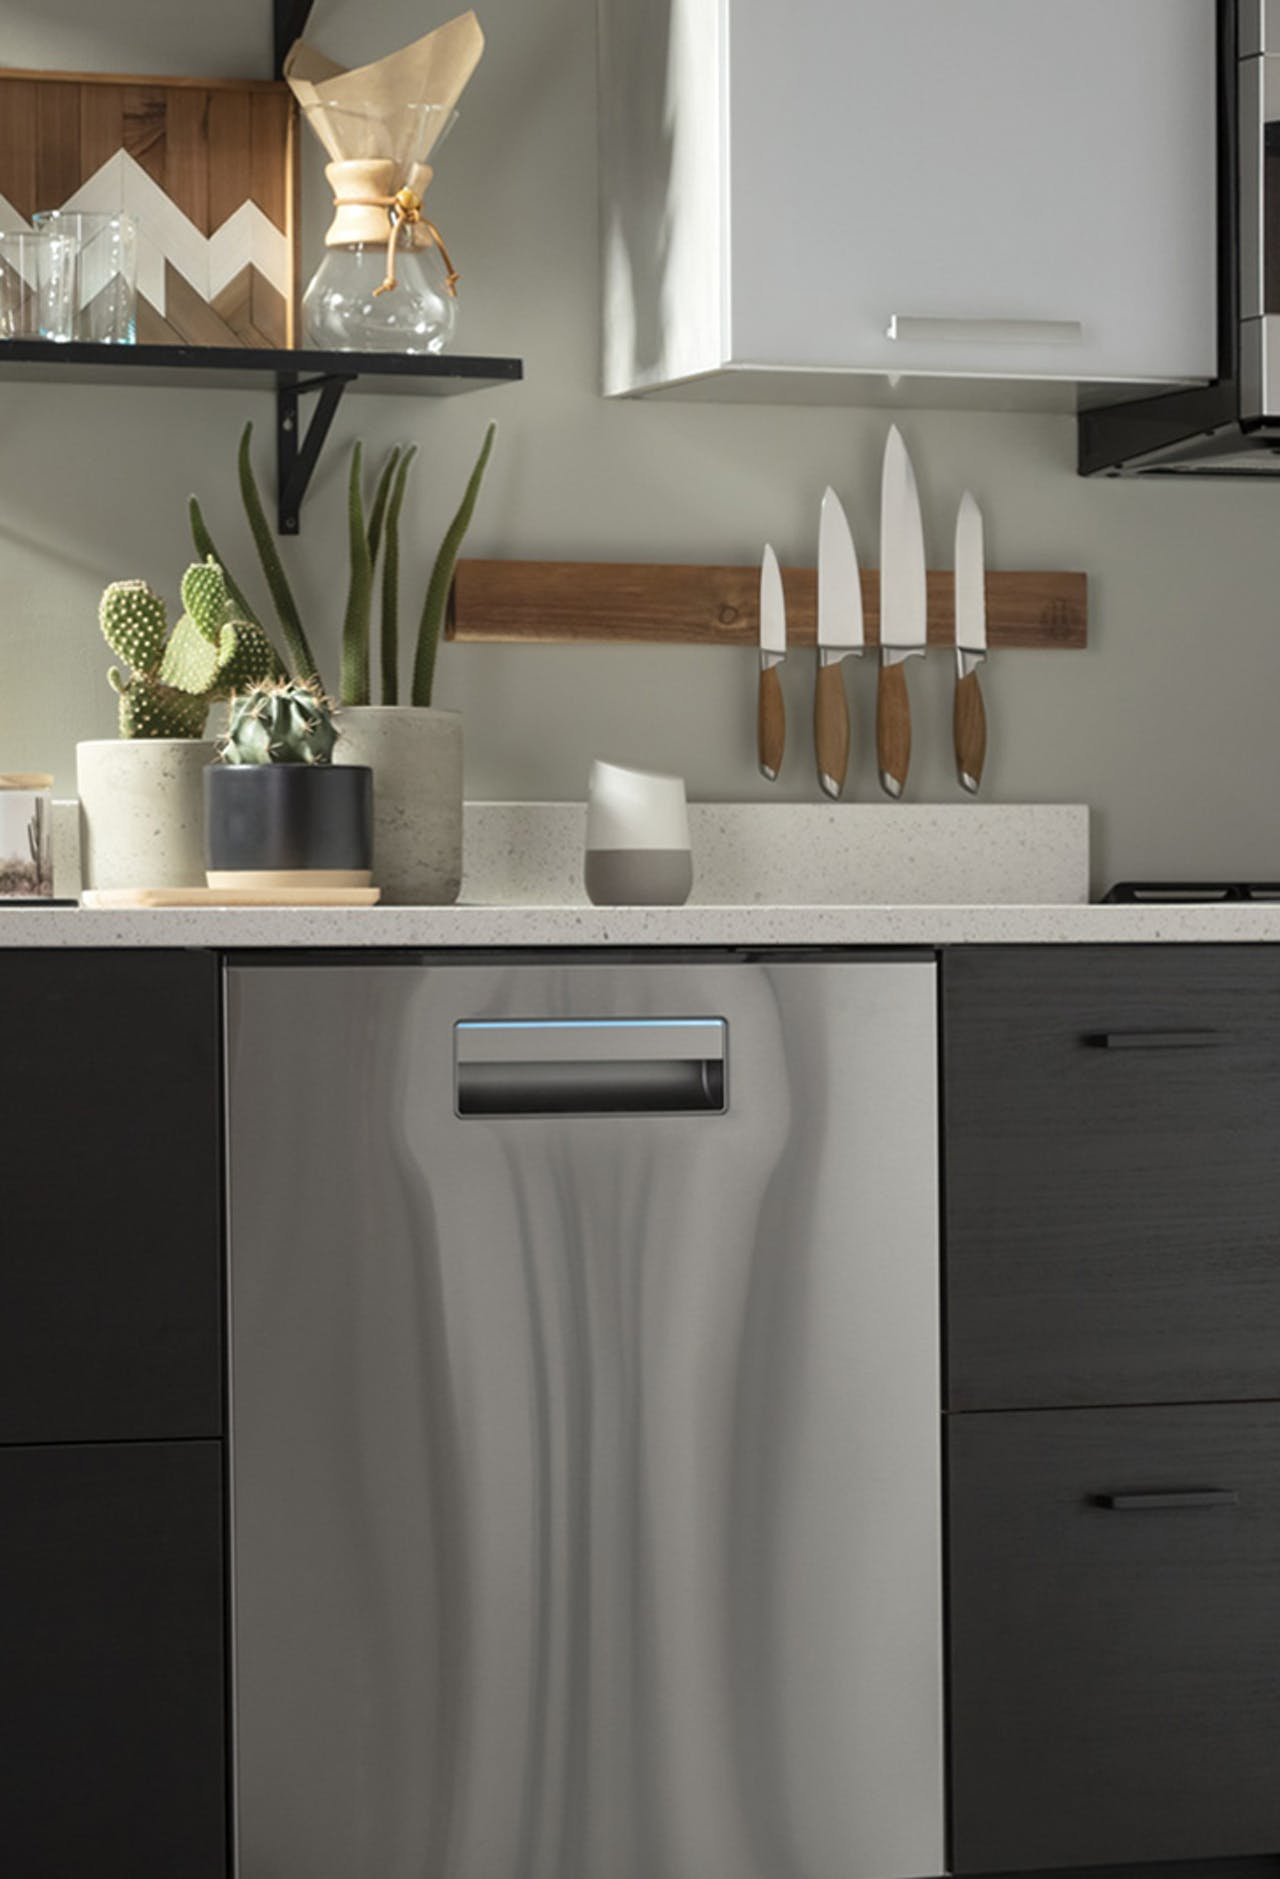 Haier Smart dishwasher in kitchen